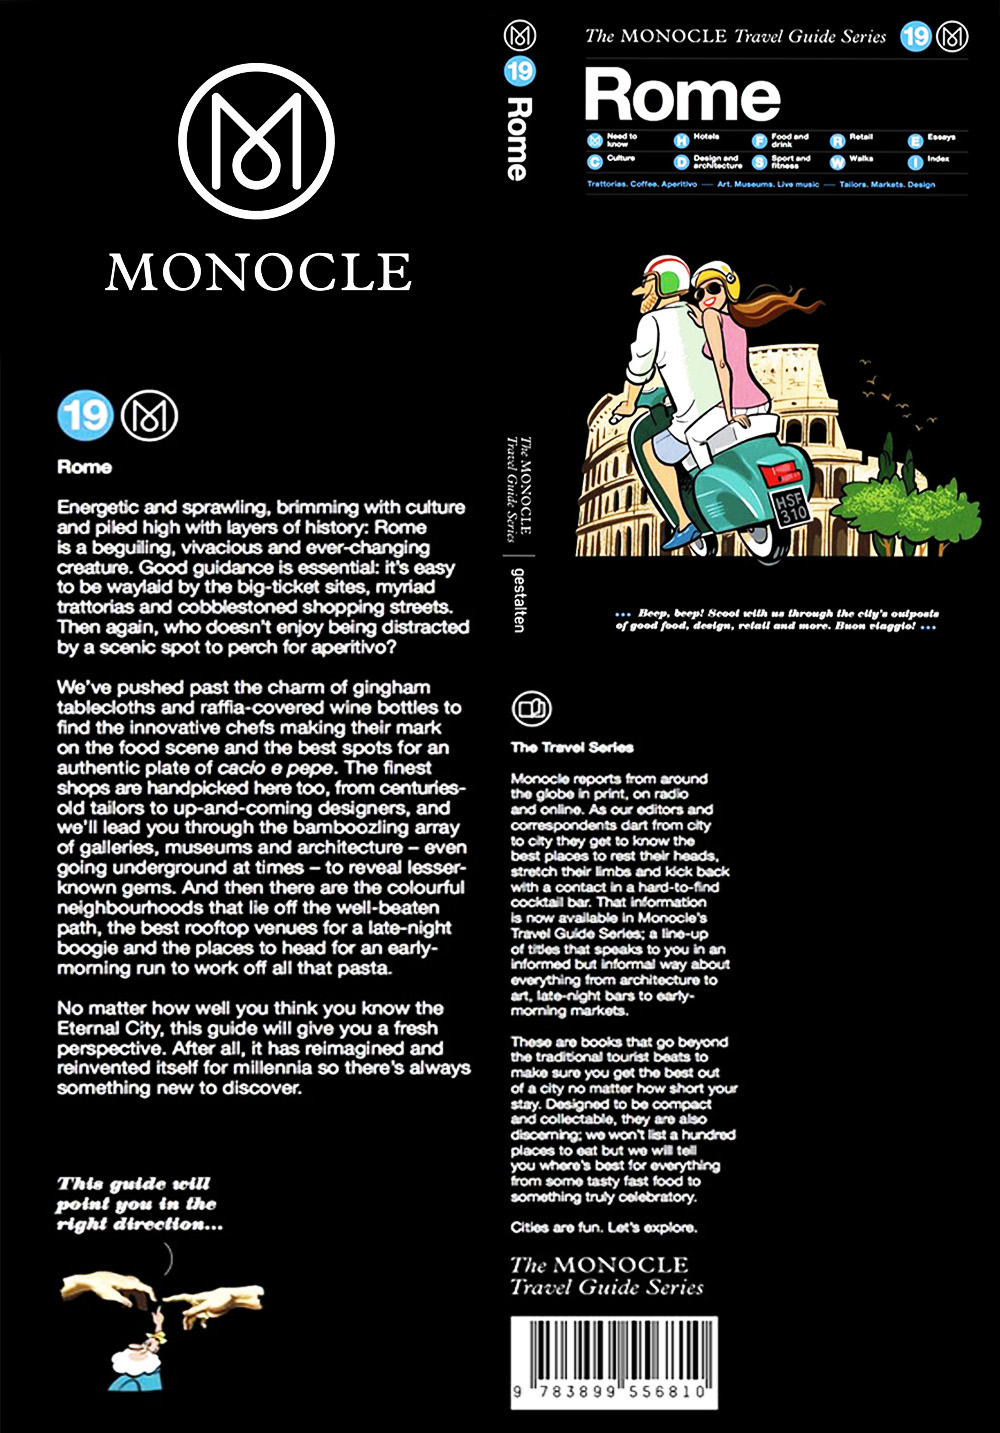 The Monocle Travel Guide Rome Hotels